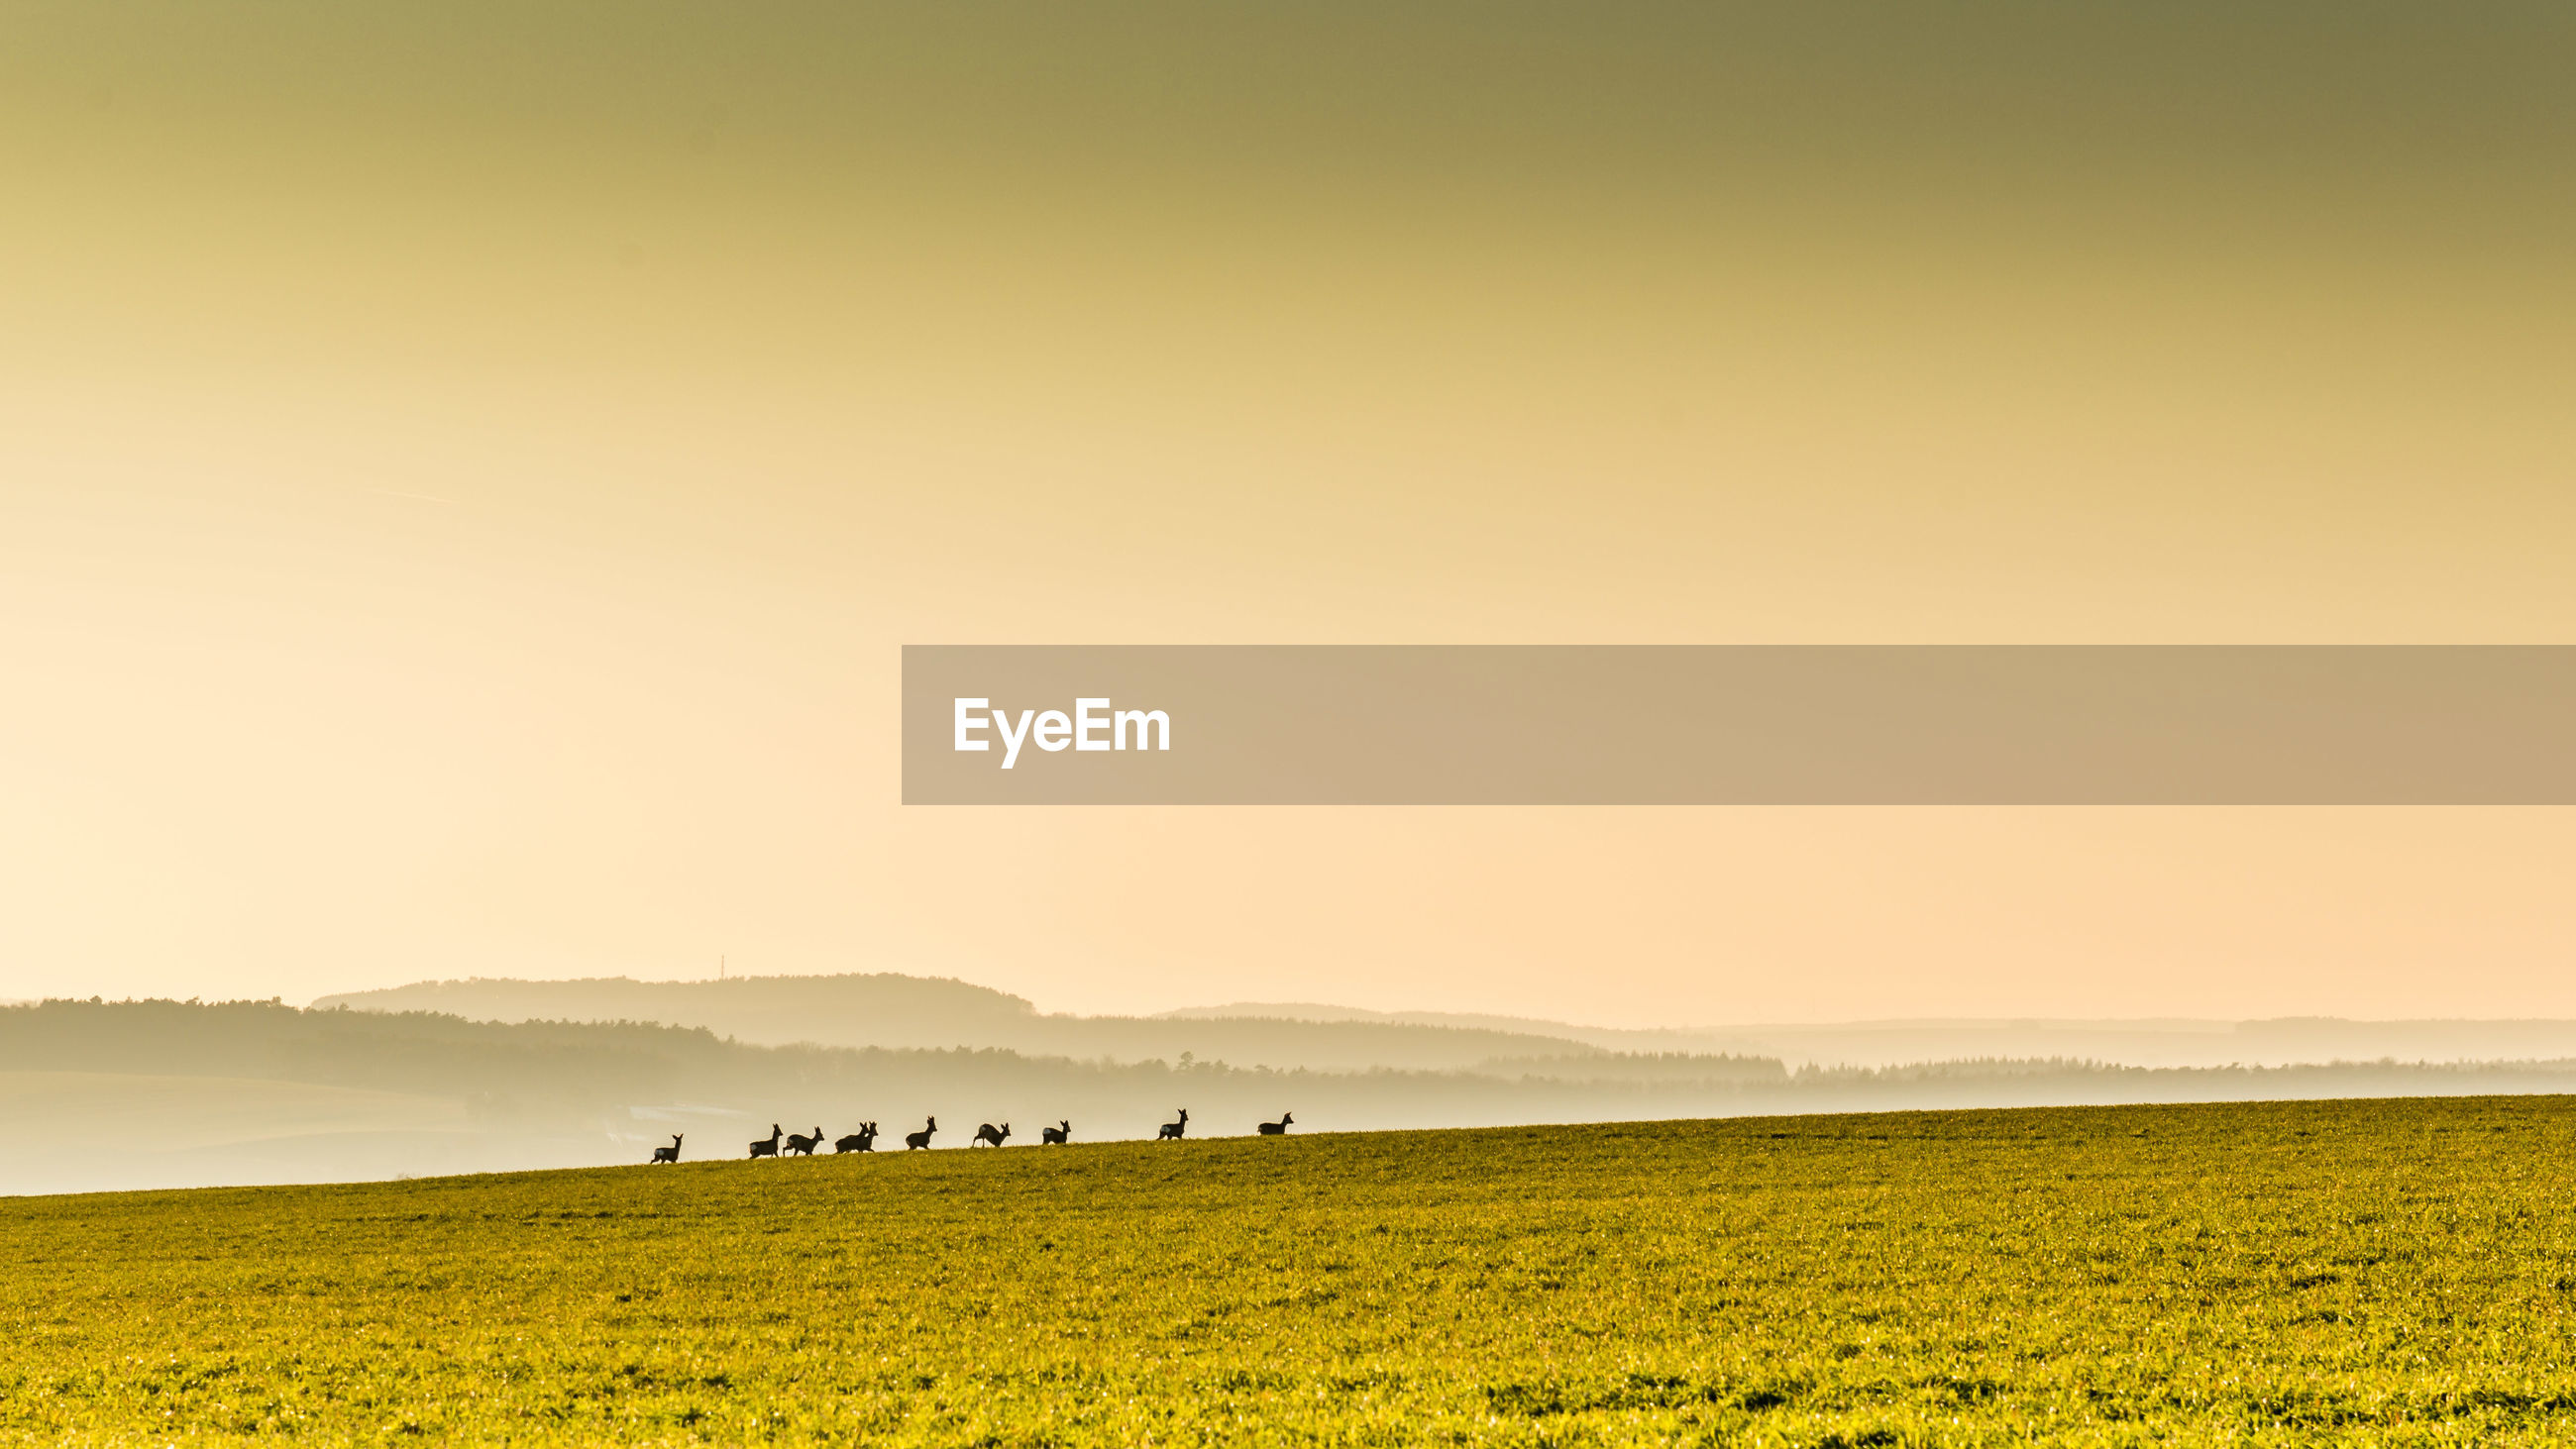 Scenic view of field with deer against sky